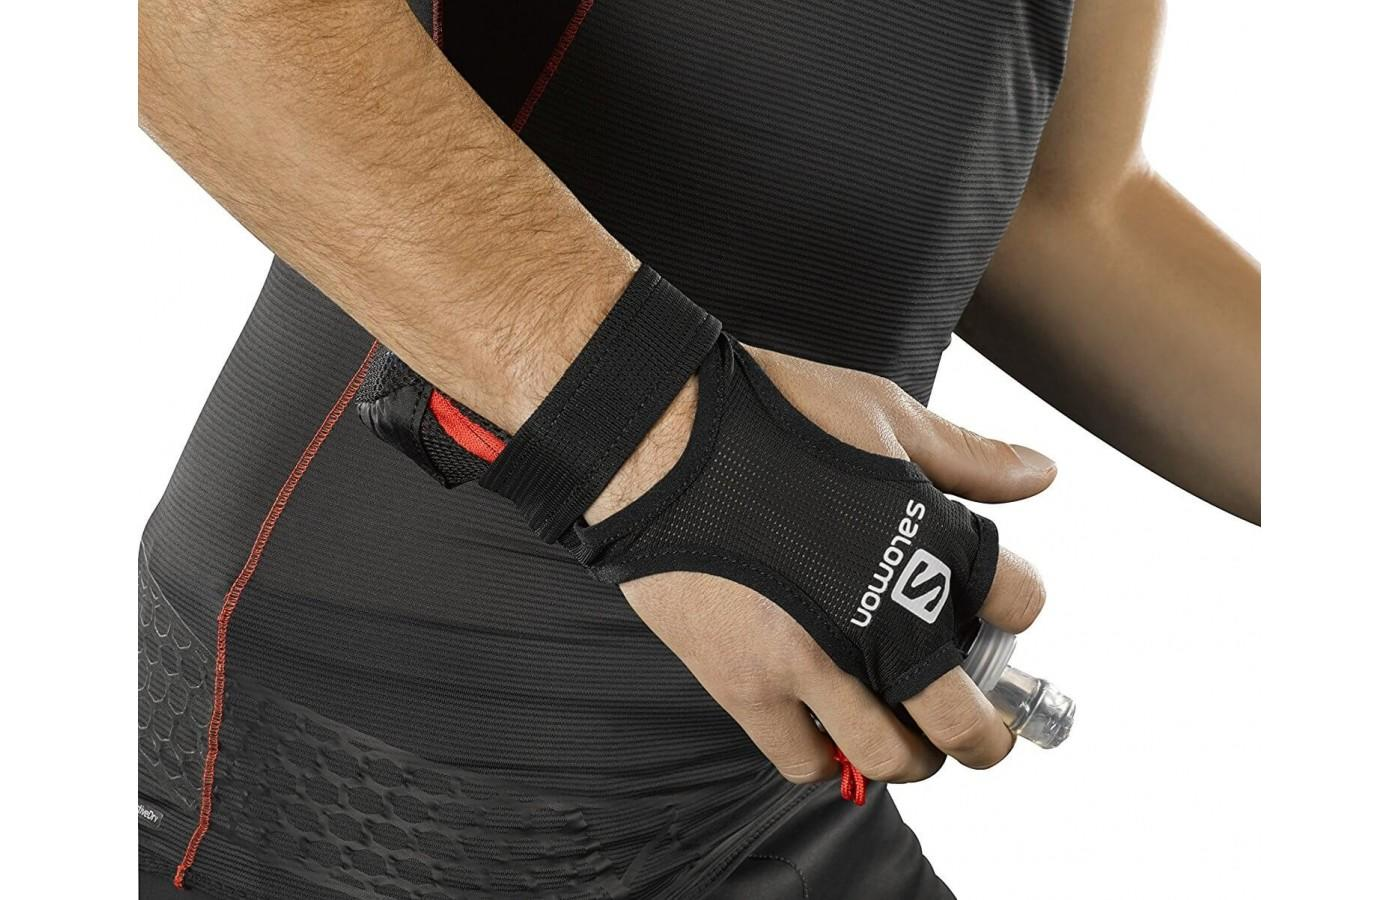 This hydration system places your water or sports drink right at your finger tips